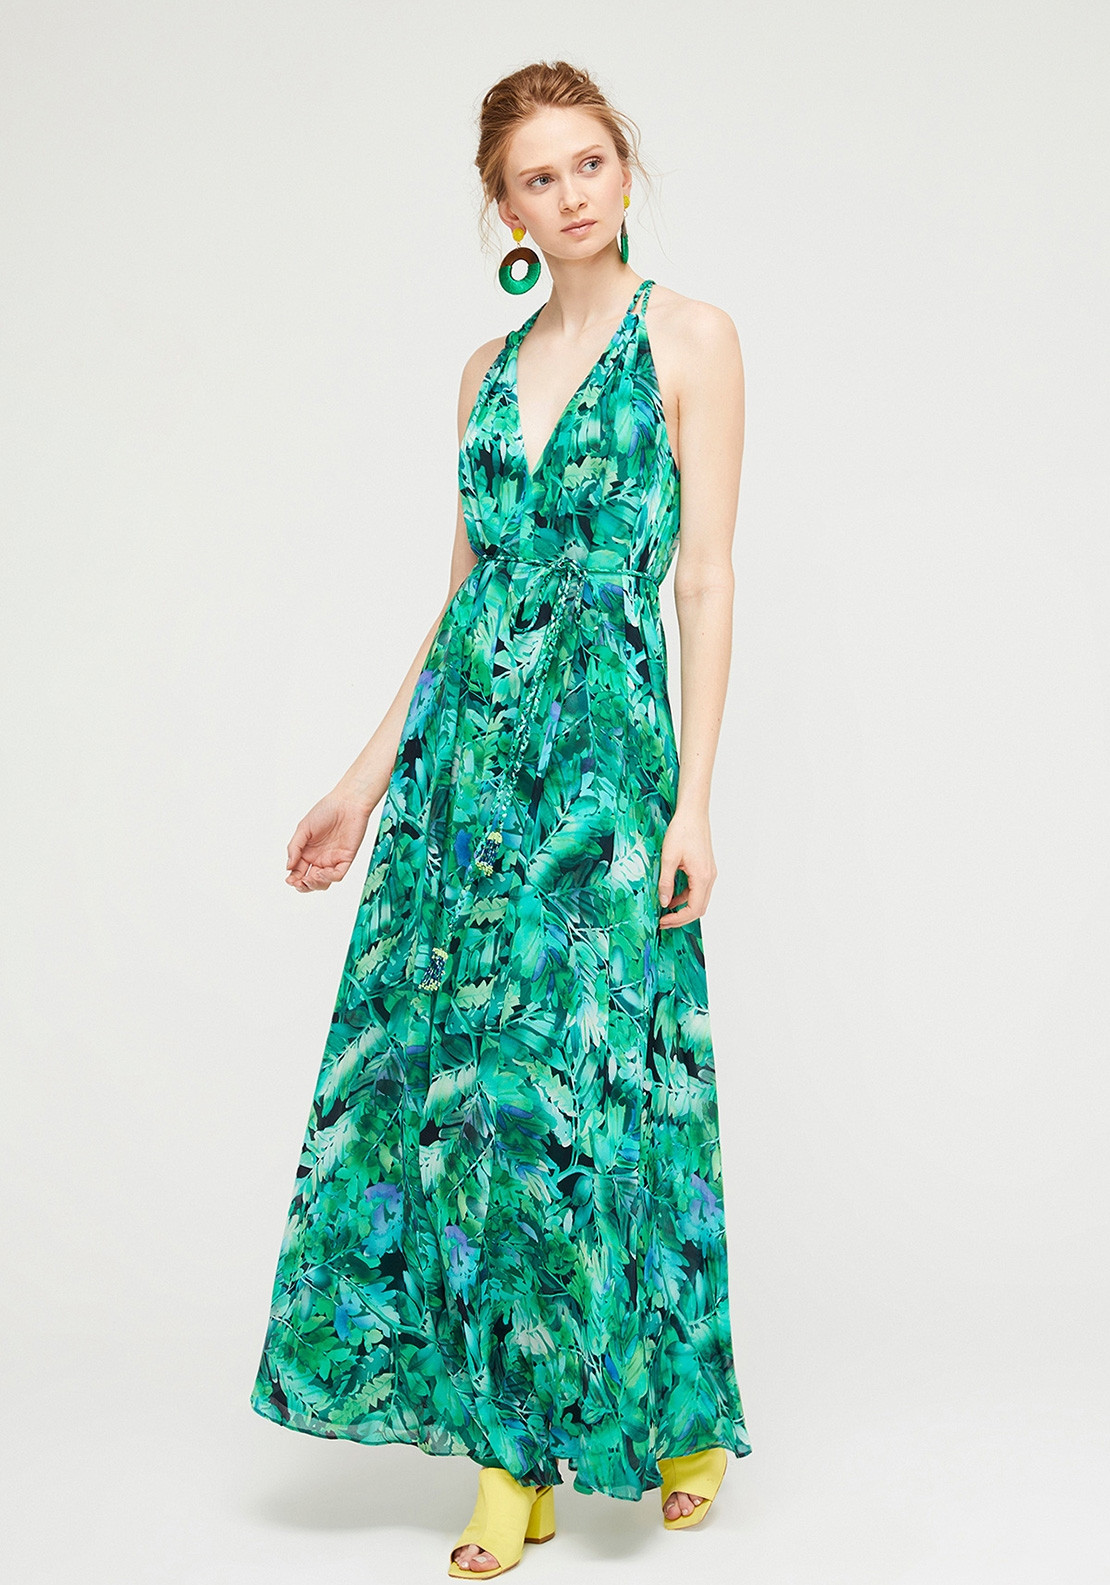 89a960c1f0e76 Exquise Leaf Print Chiffon Maxi Dress, Green. Be the first to review this  product